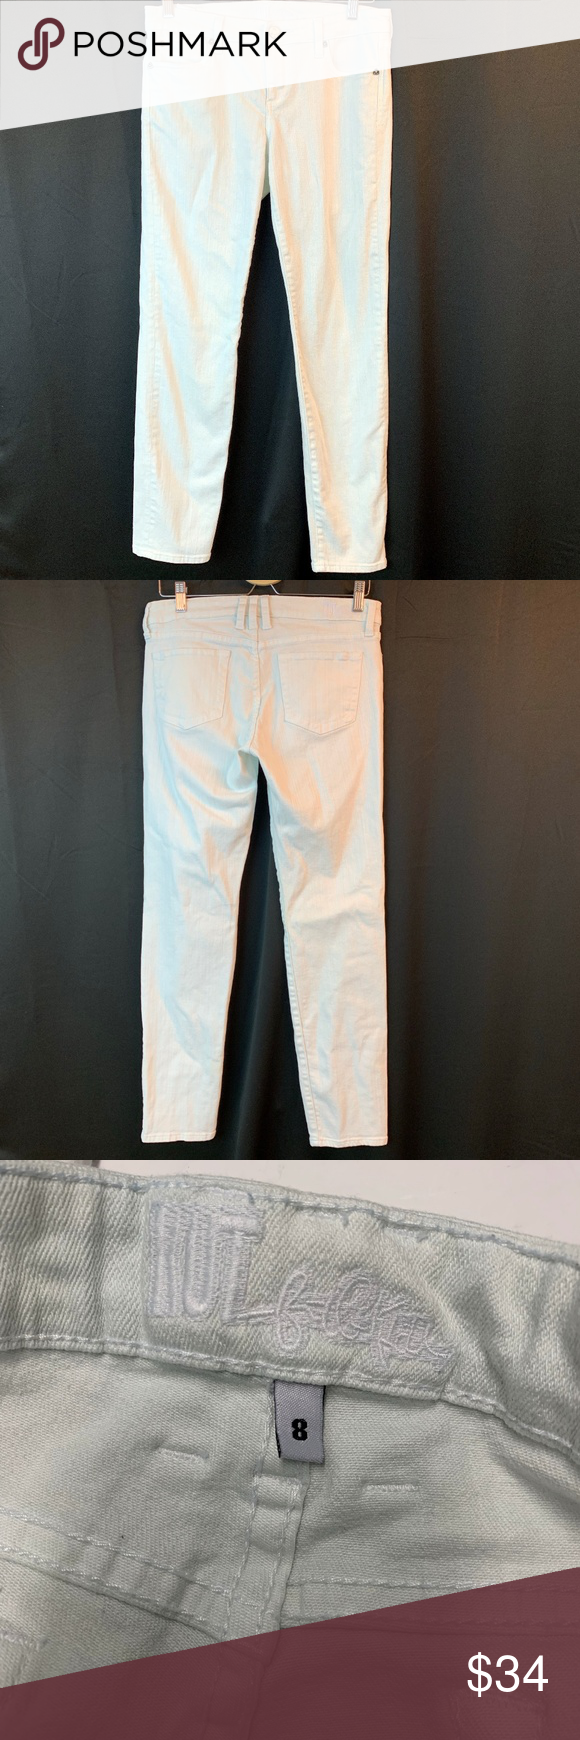 Kut From The Kloth Jeans White Skinny 8 Pants For Women White Jeans Kut From The Kloth